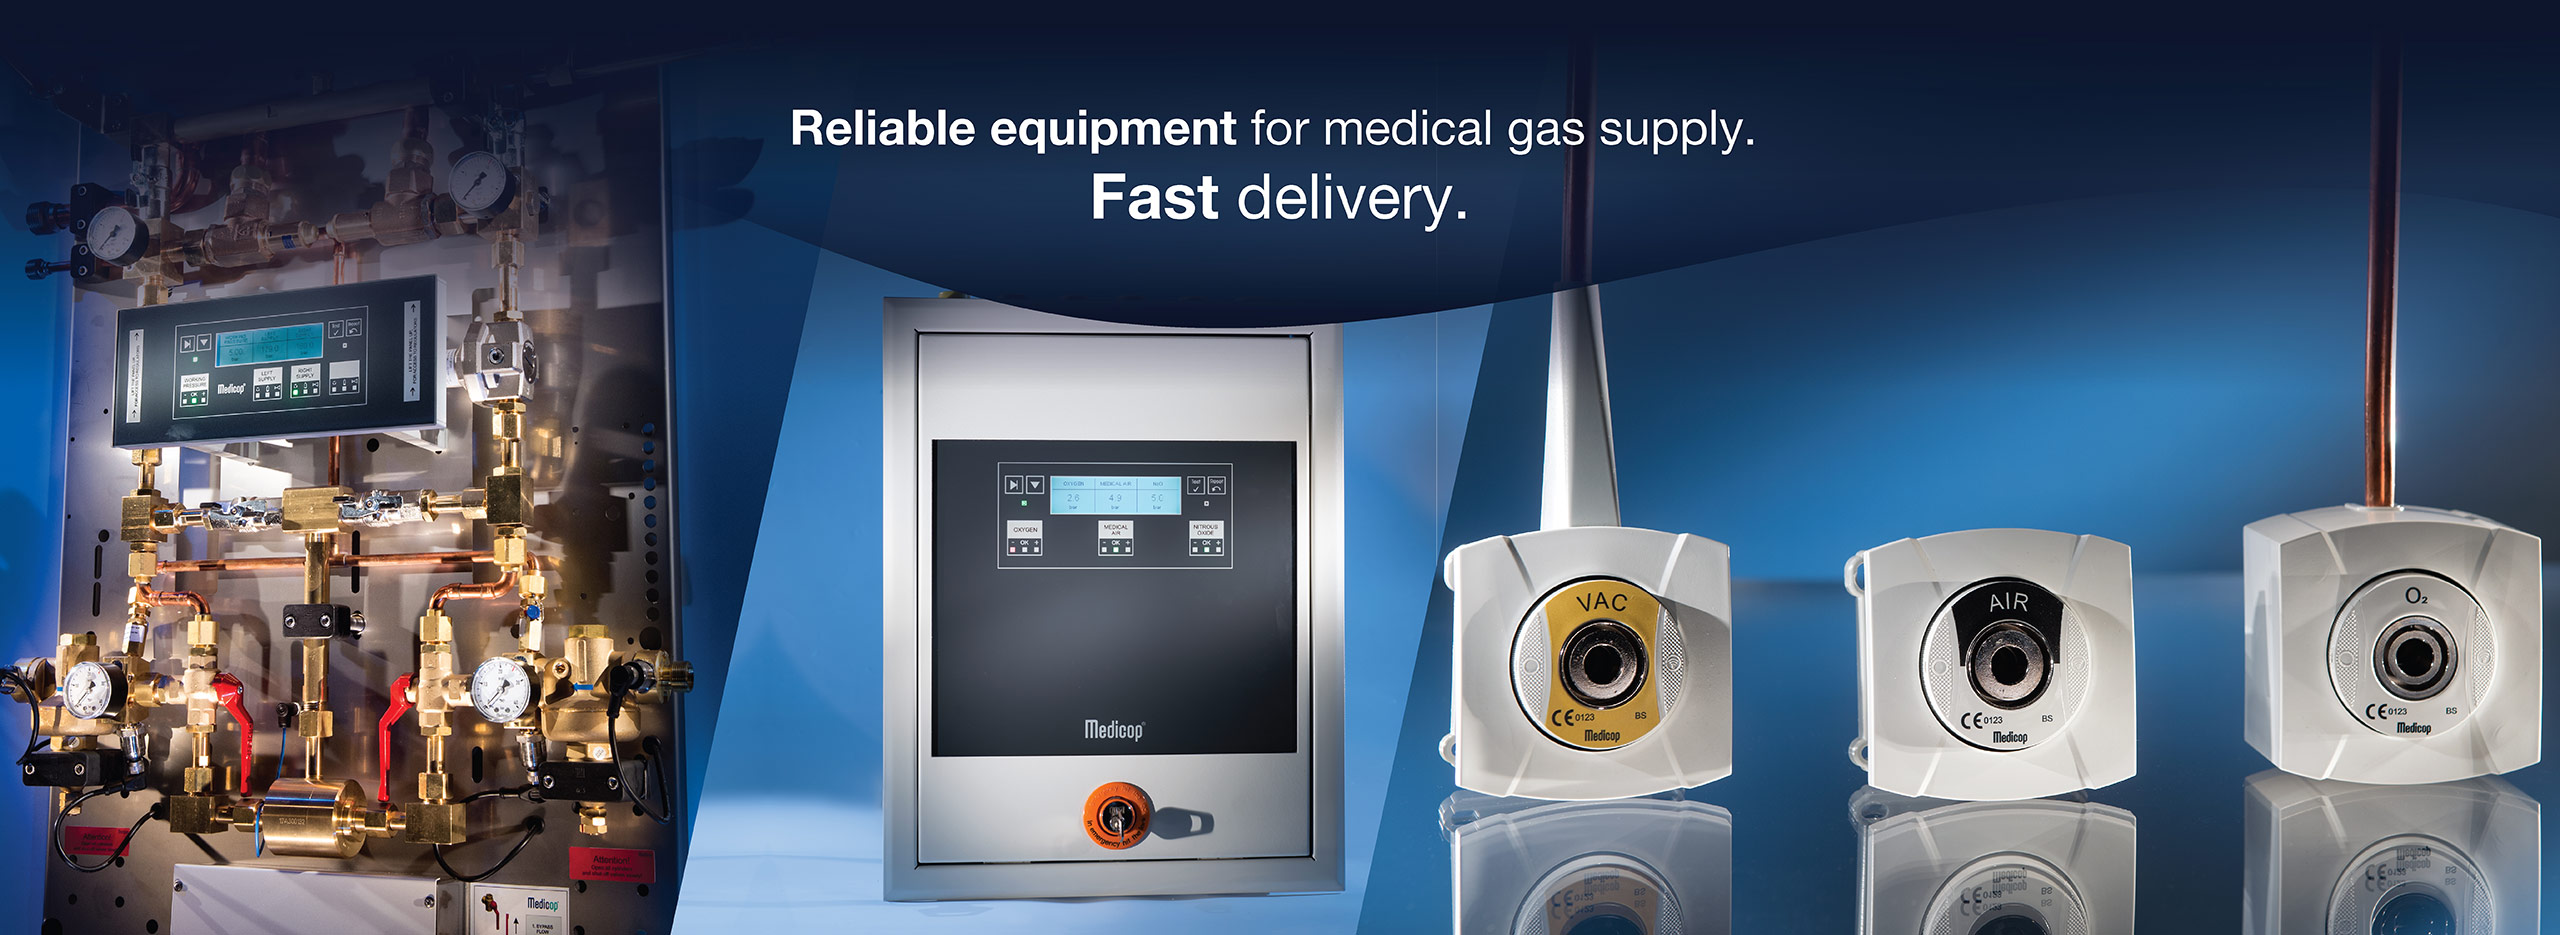 Reliable equpment for medical gas supply